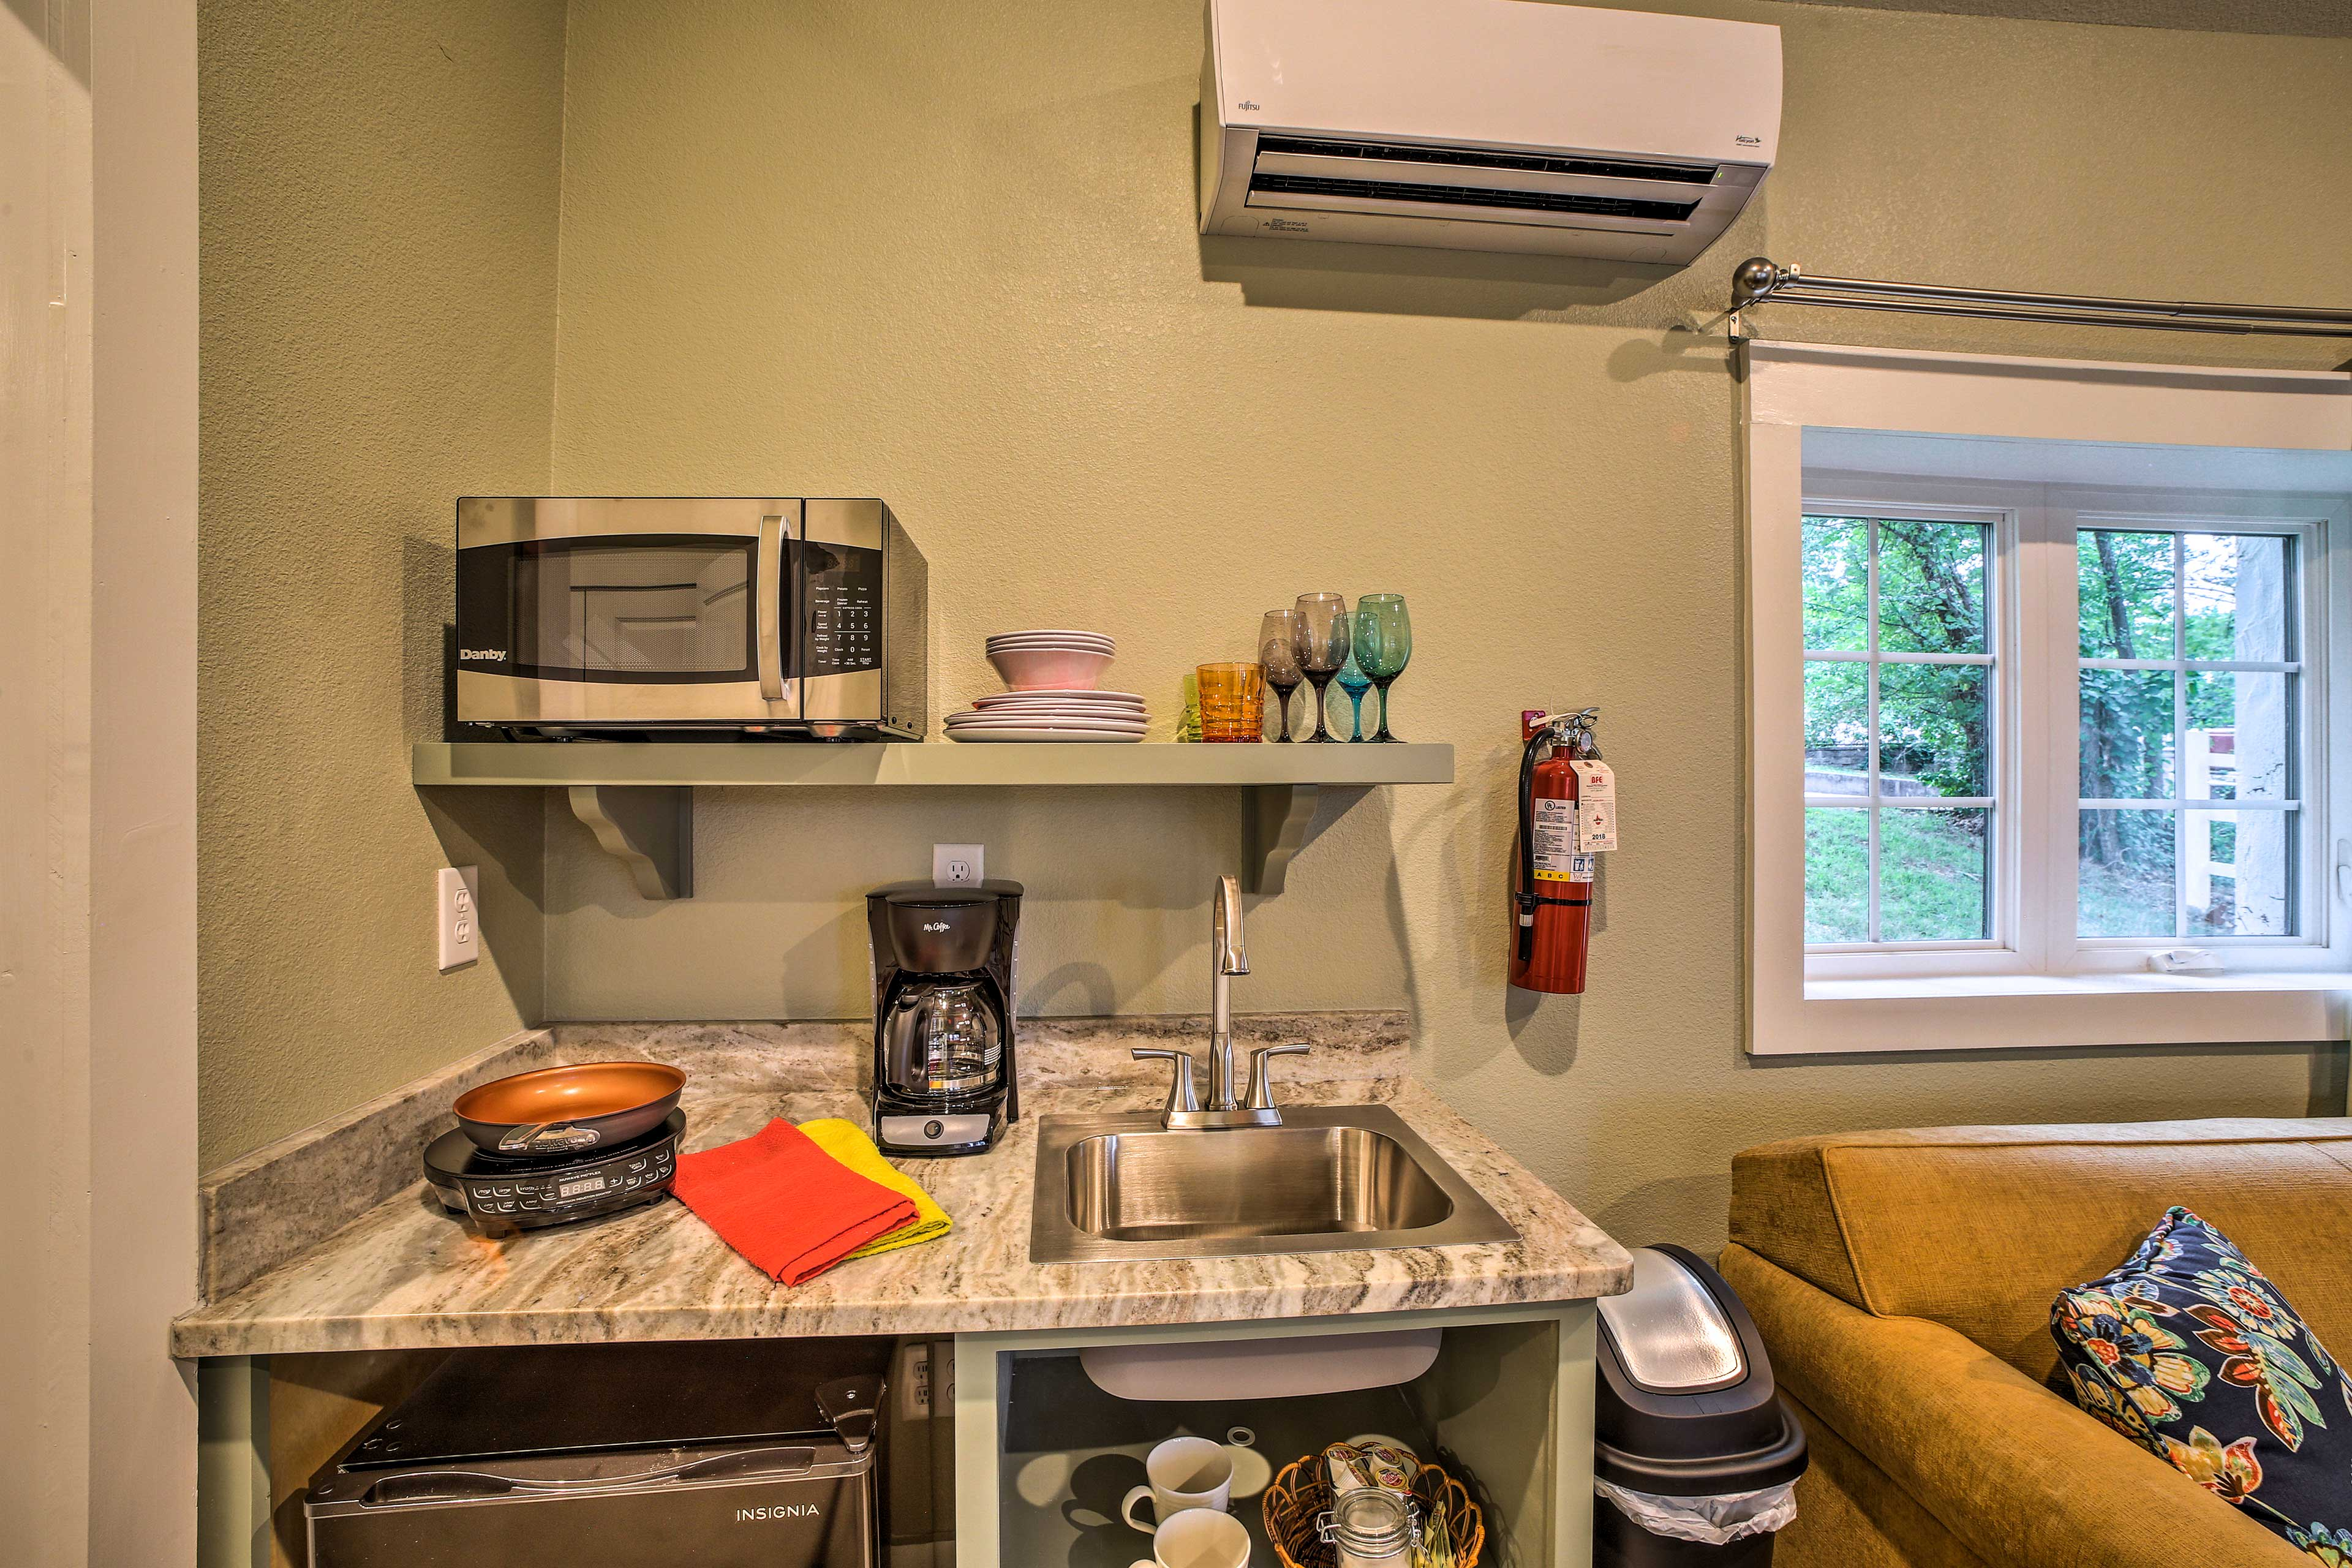 Cook up breakfast in the well-equipped kitchenette.